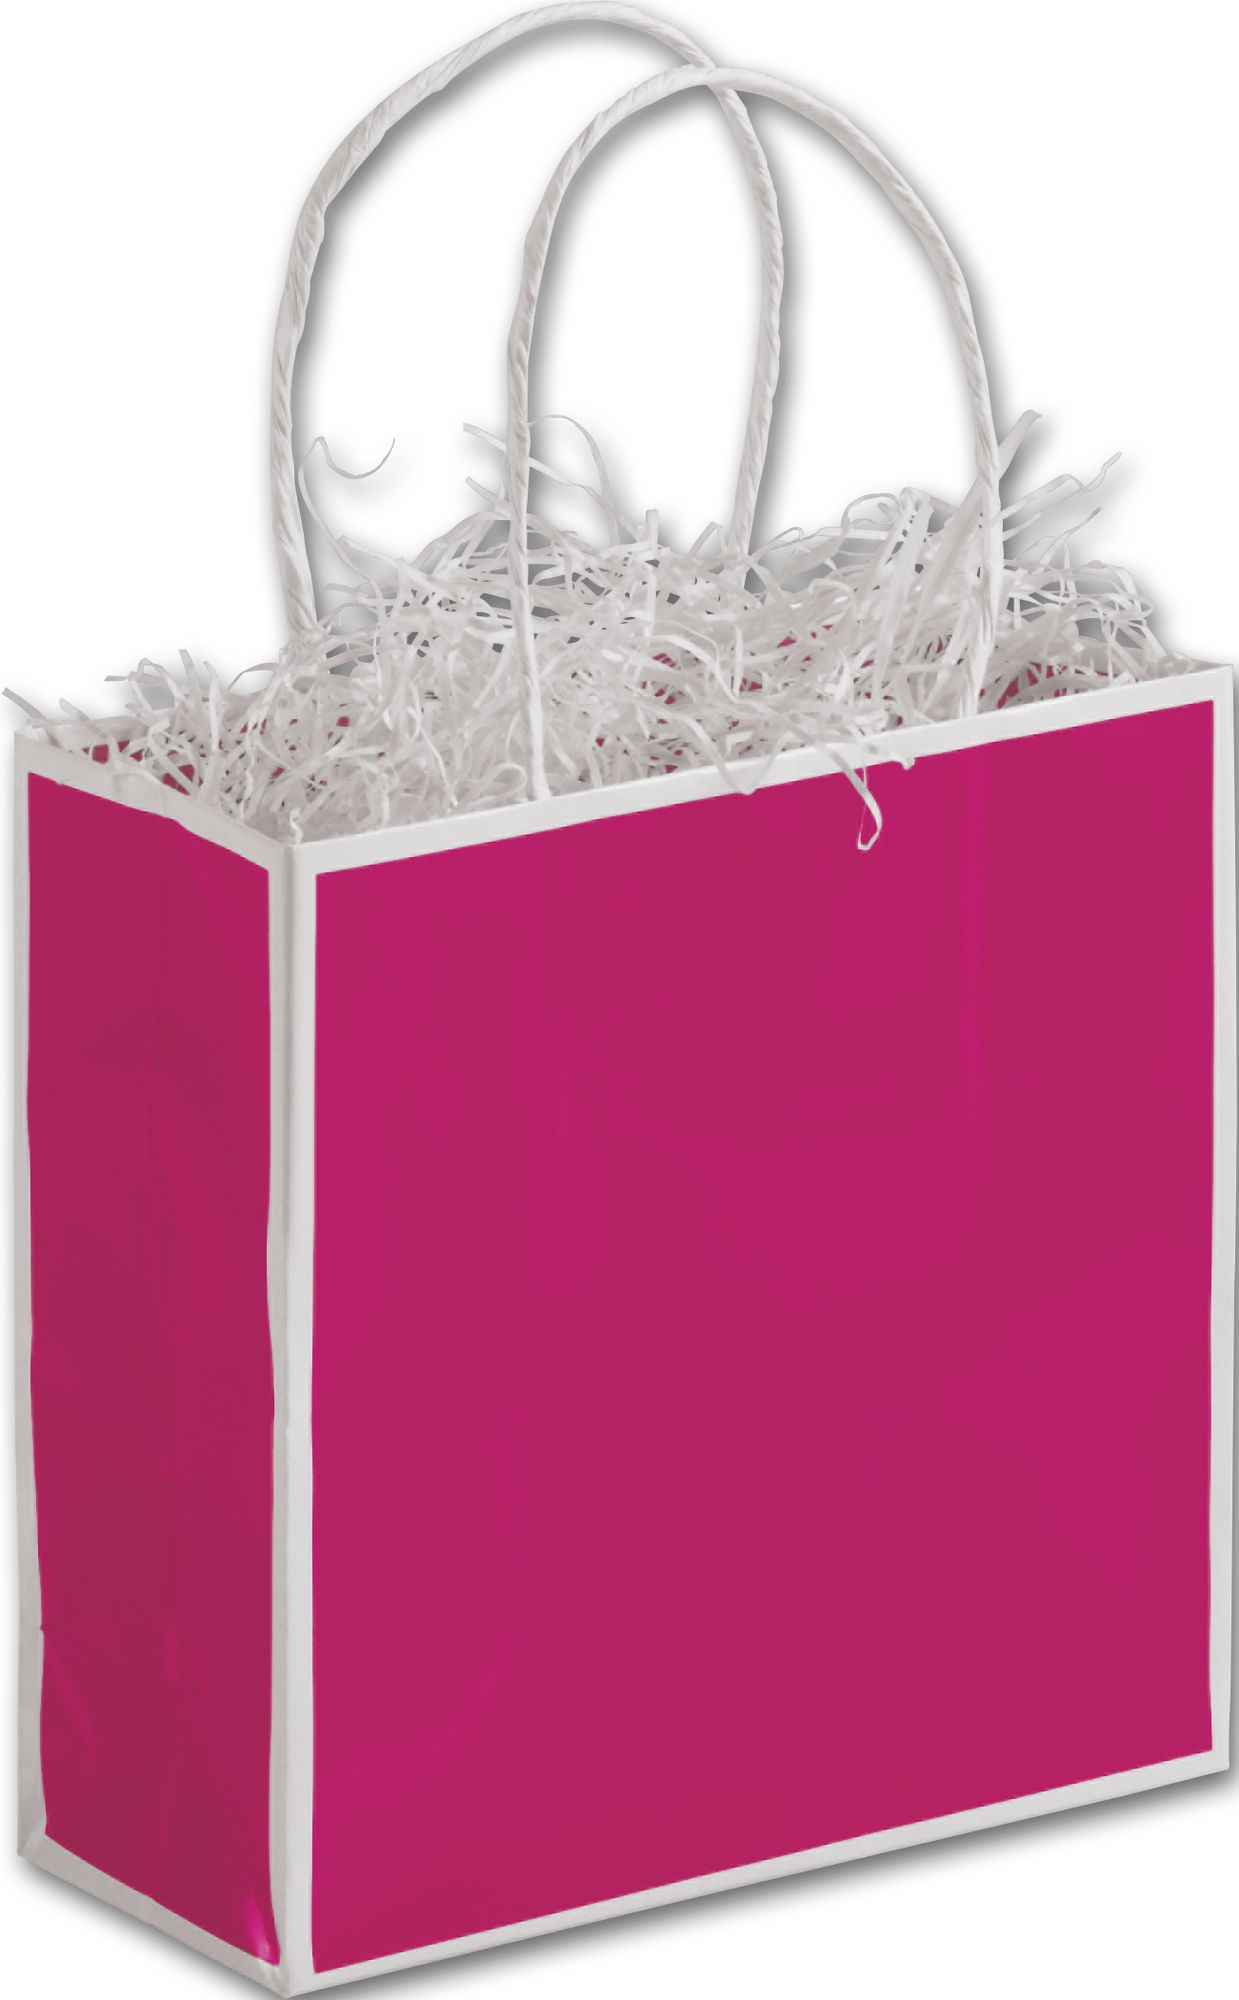 Encase your items with taste with these adorable mini fuchsia bags. Perfect for spas!